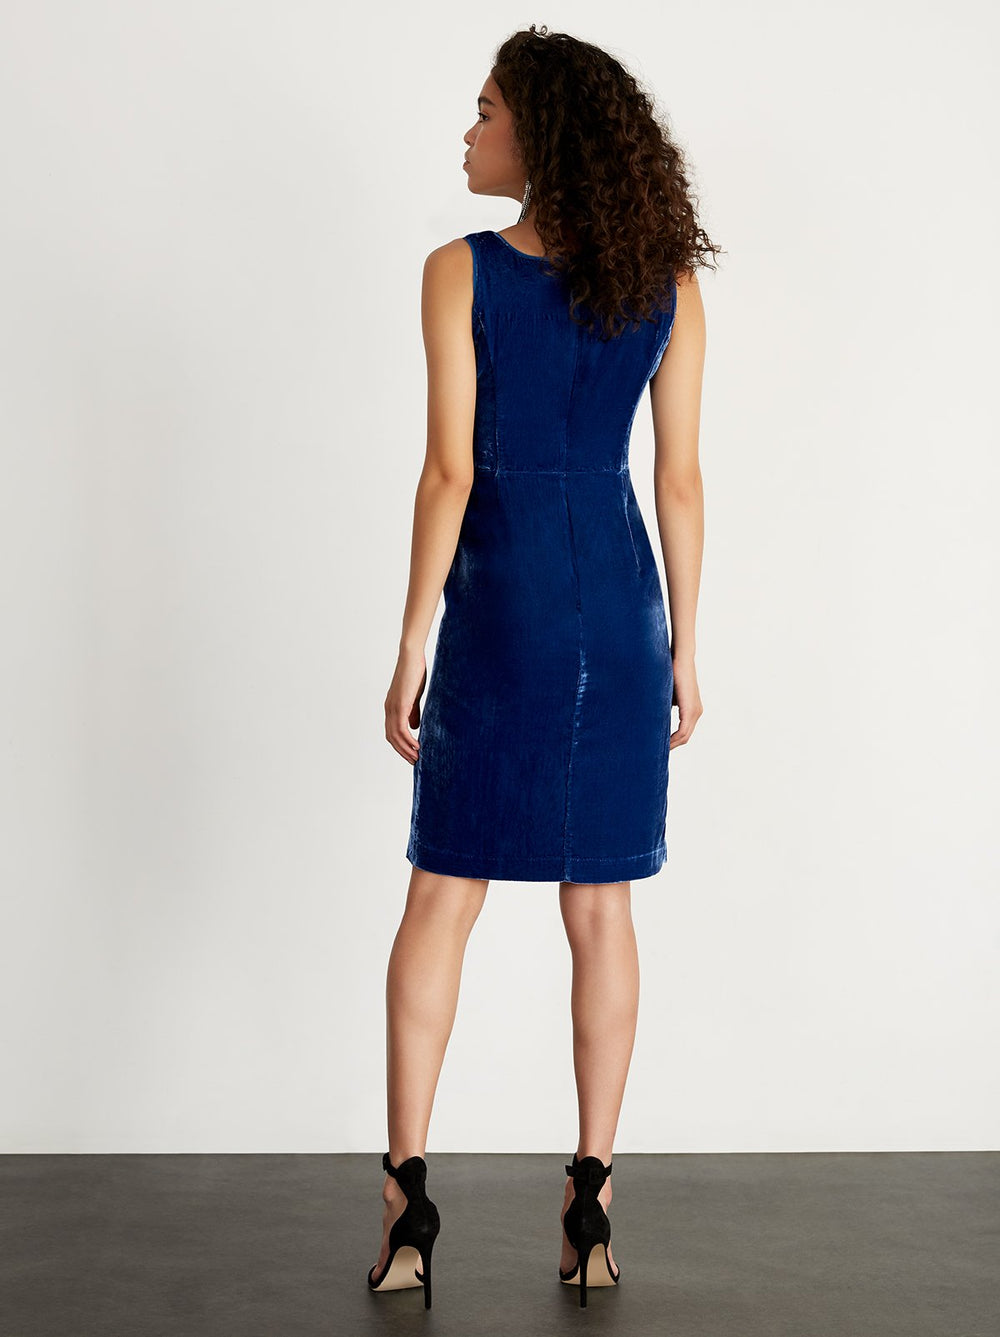 Lucette Blue Emroidered Velvet Dress by KITRI Studio